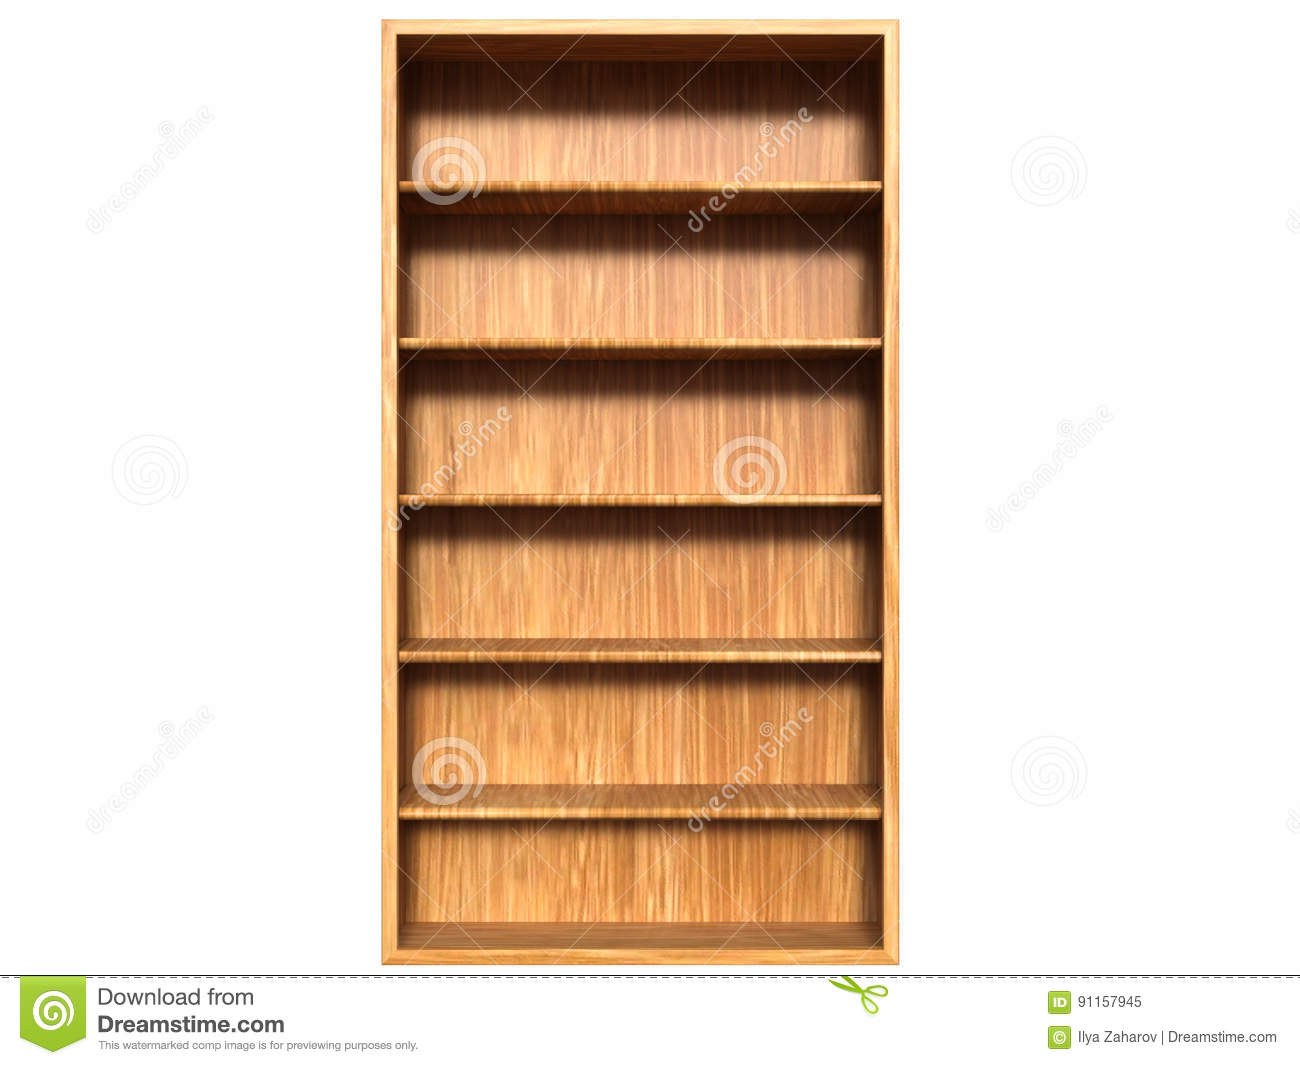 A Wooden Wardrobe From Light Brown Wood And Empty Shelves Stock ... for Wardrobe Front View  155sfw